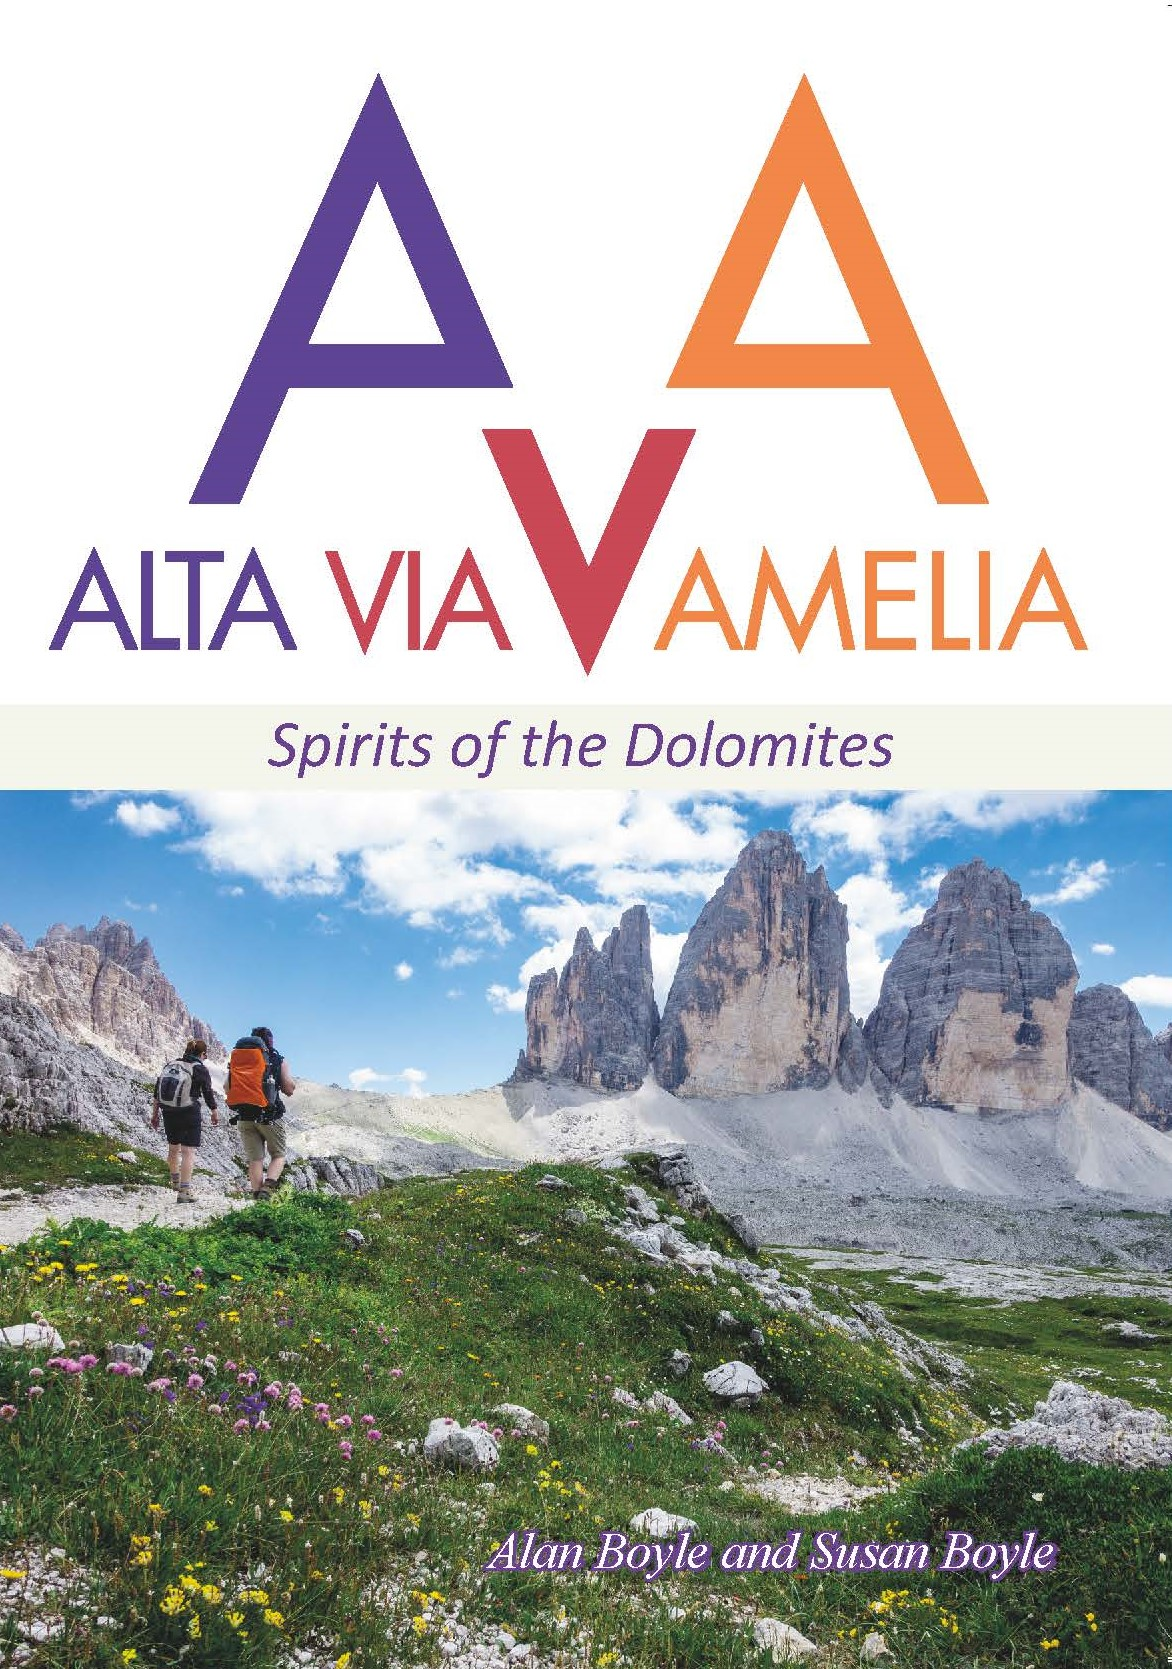 ALTA VIA AMELIA Spirits of the Dolomites